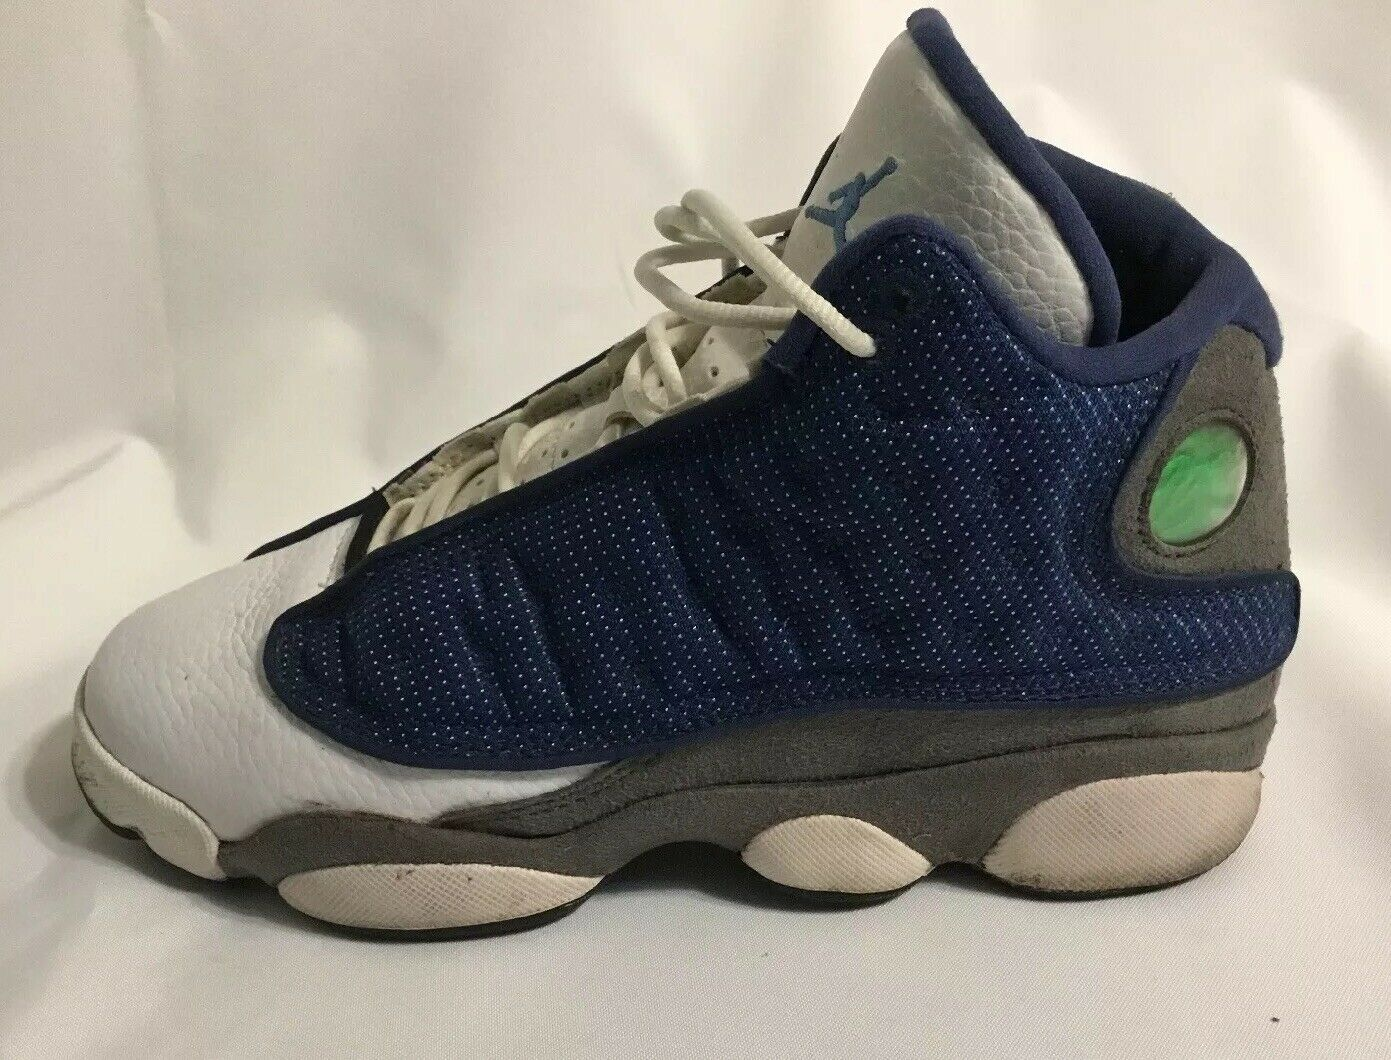 2010 Air Jordan XIII 13 Retro Flint Size 6Y Reflective 3M Playoff White And bluee